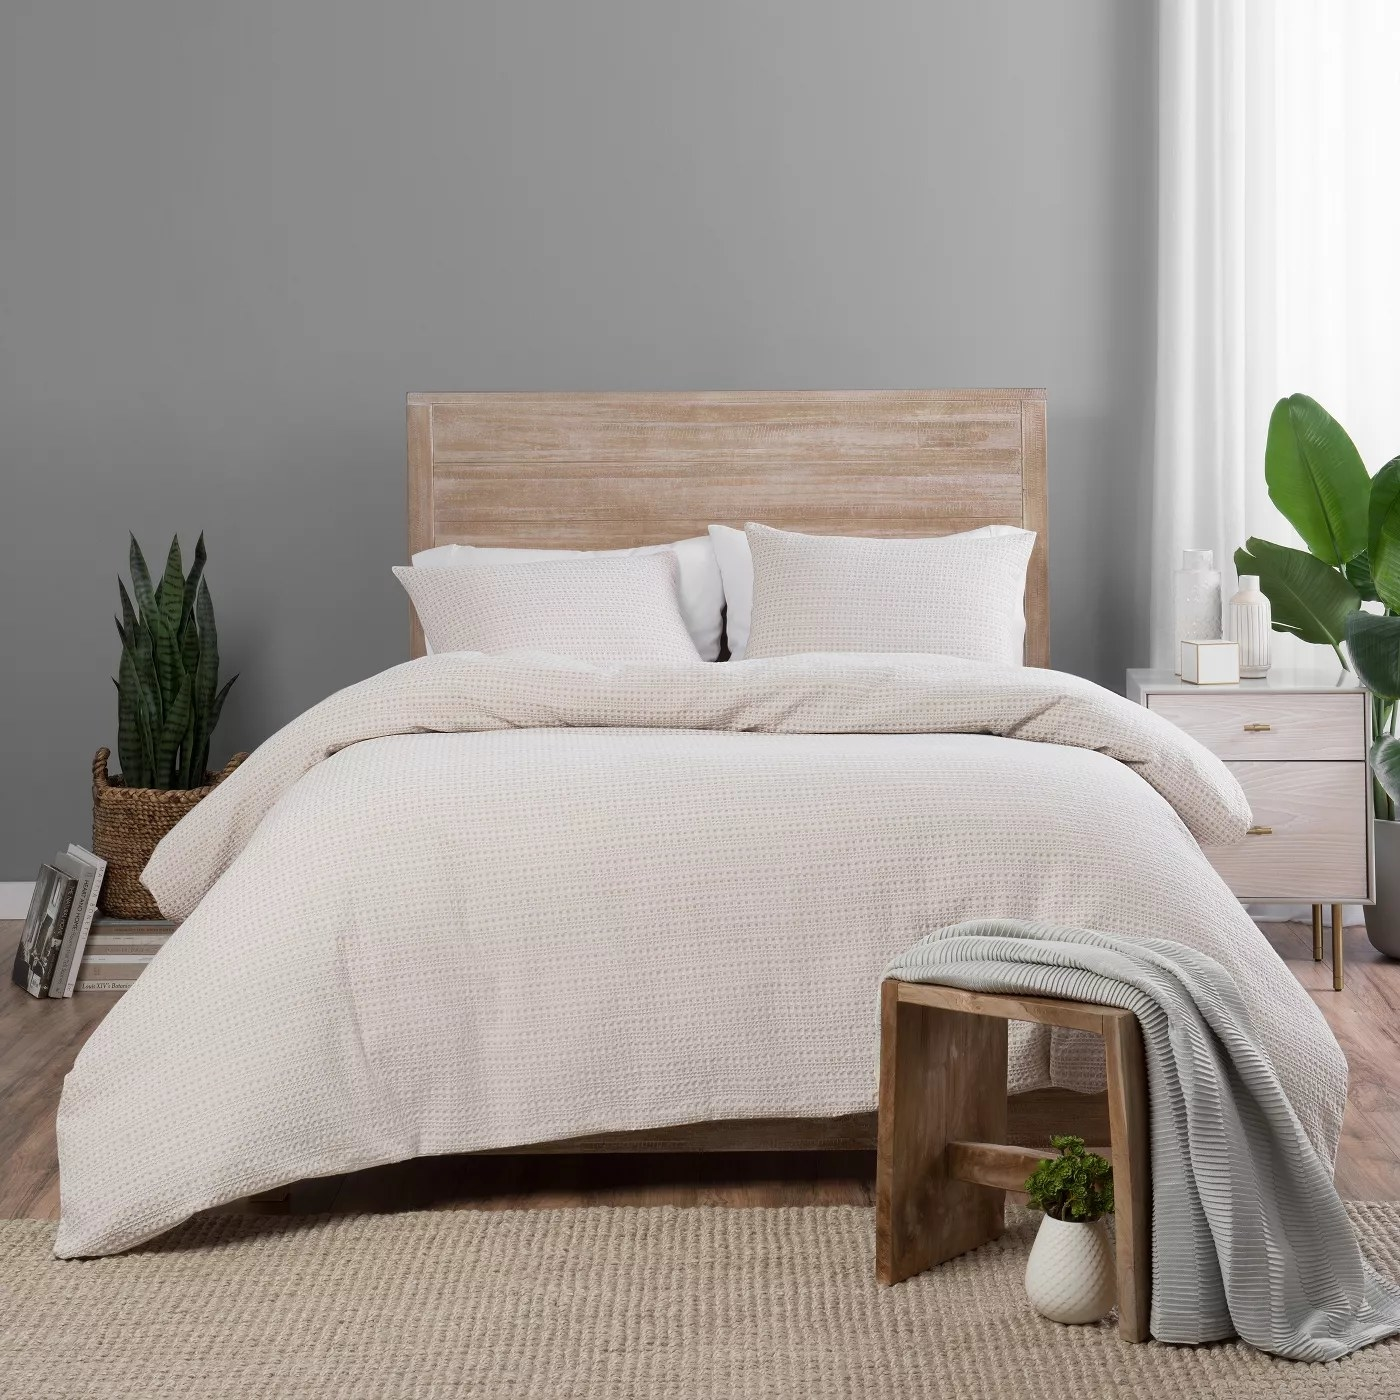 The taupe comforter and matching shams